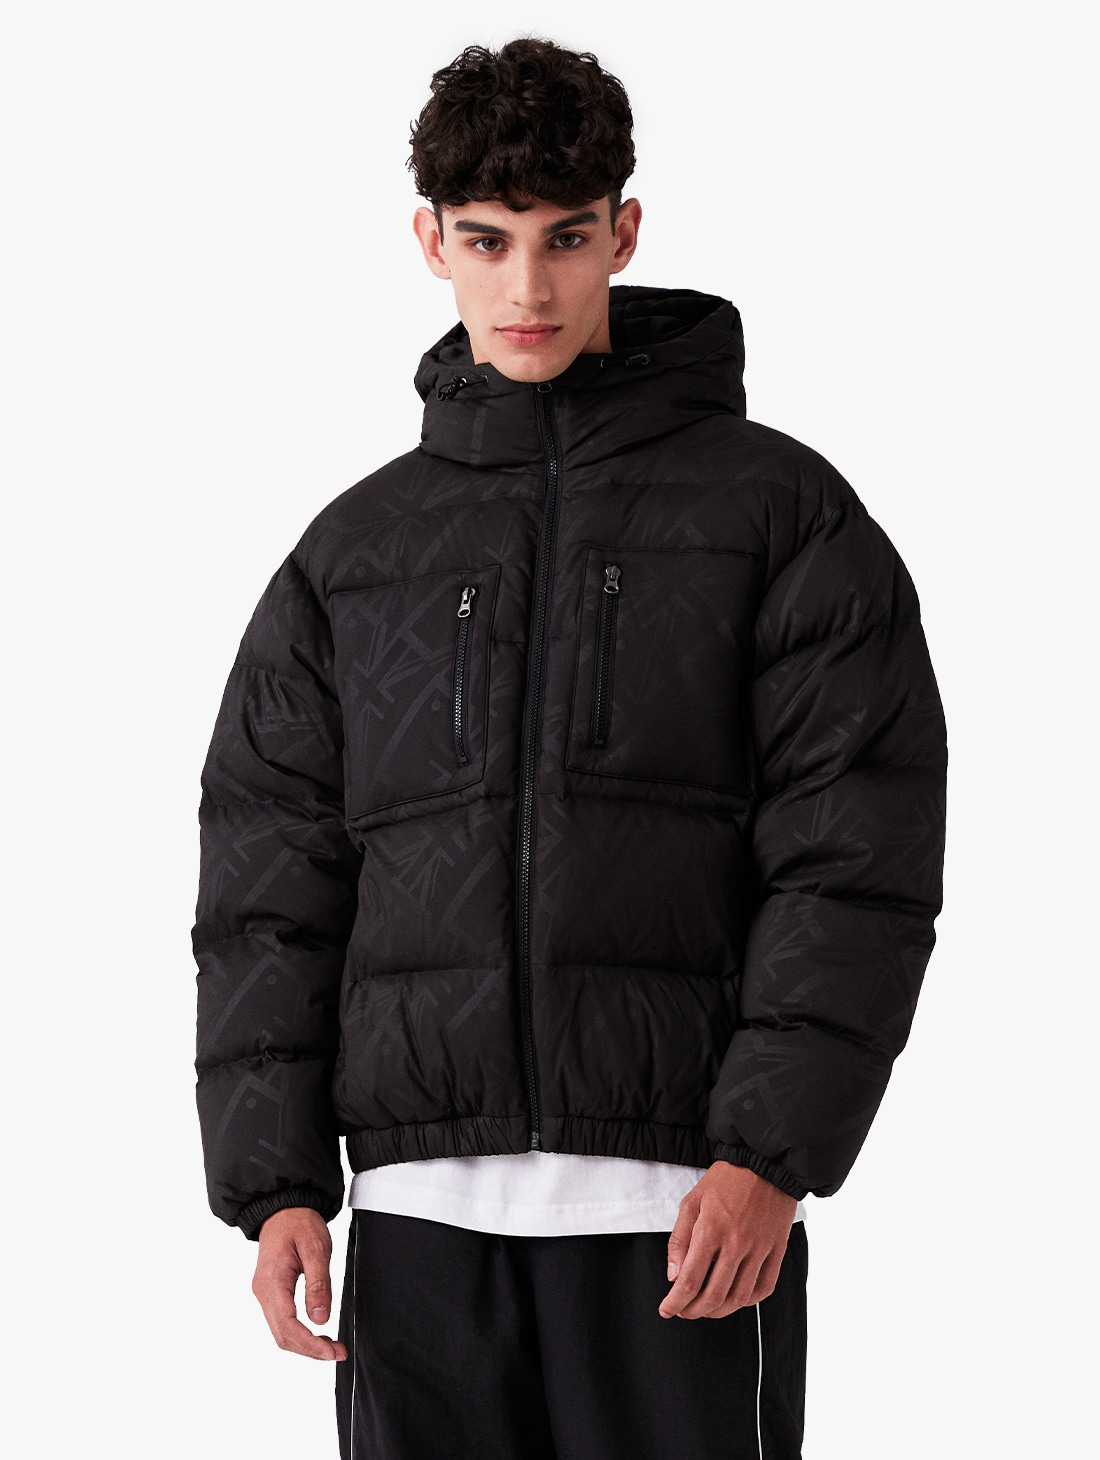 [SPECIAL GIFT] WWFC EMBO DOWN JACKET